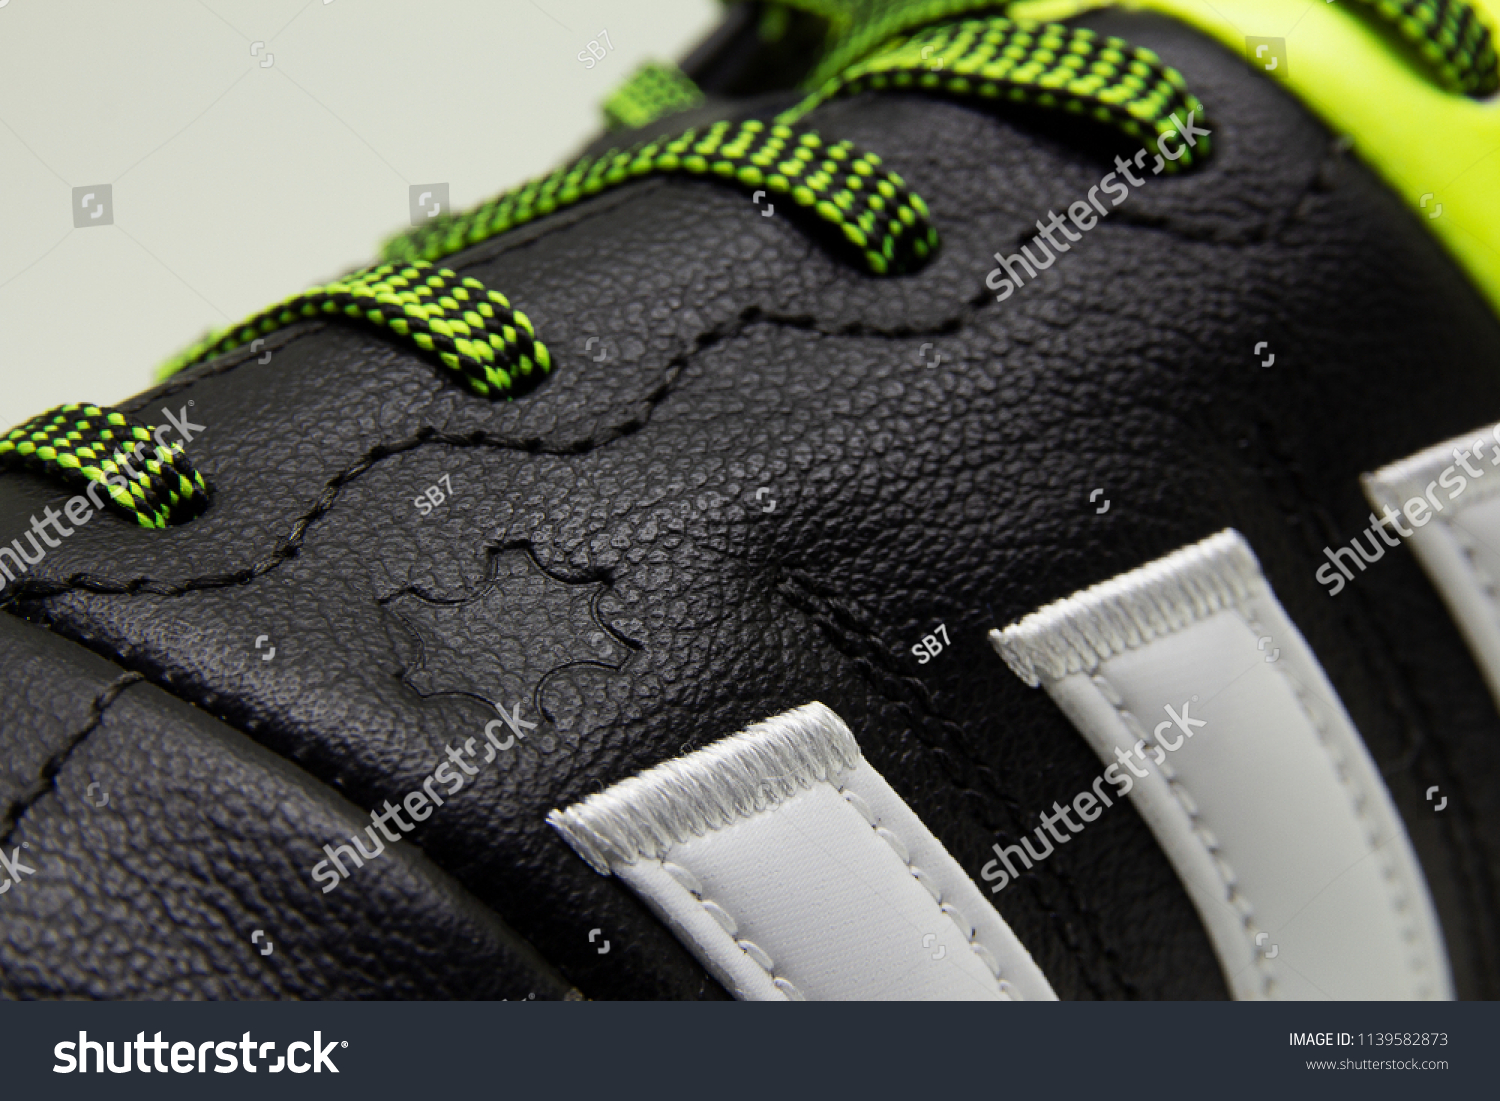 Football Boots Soccer Shoes Adidas Ace Stock Photo (Edit Now ... 8d5cc48b3